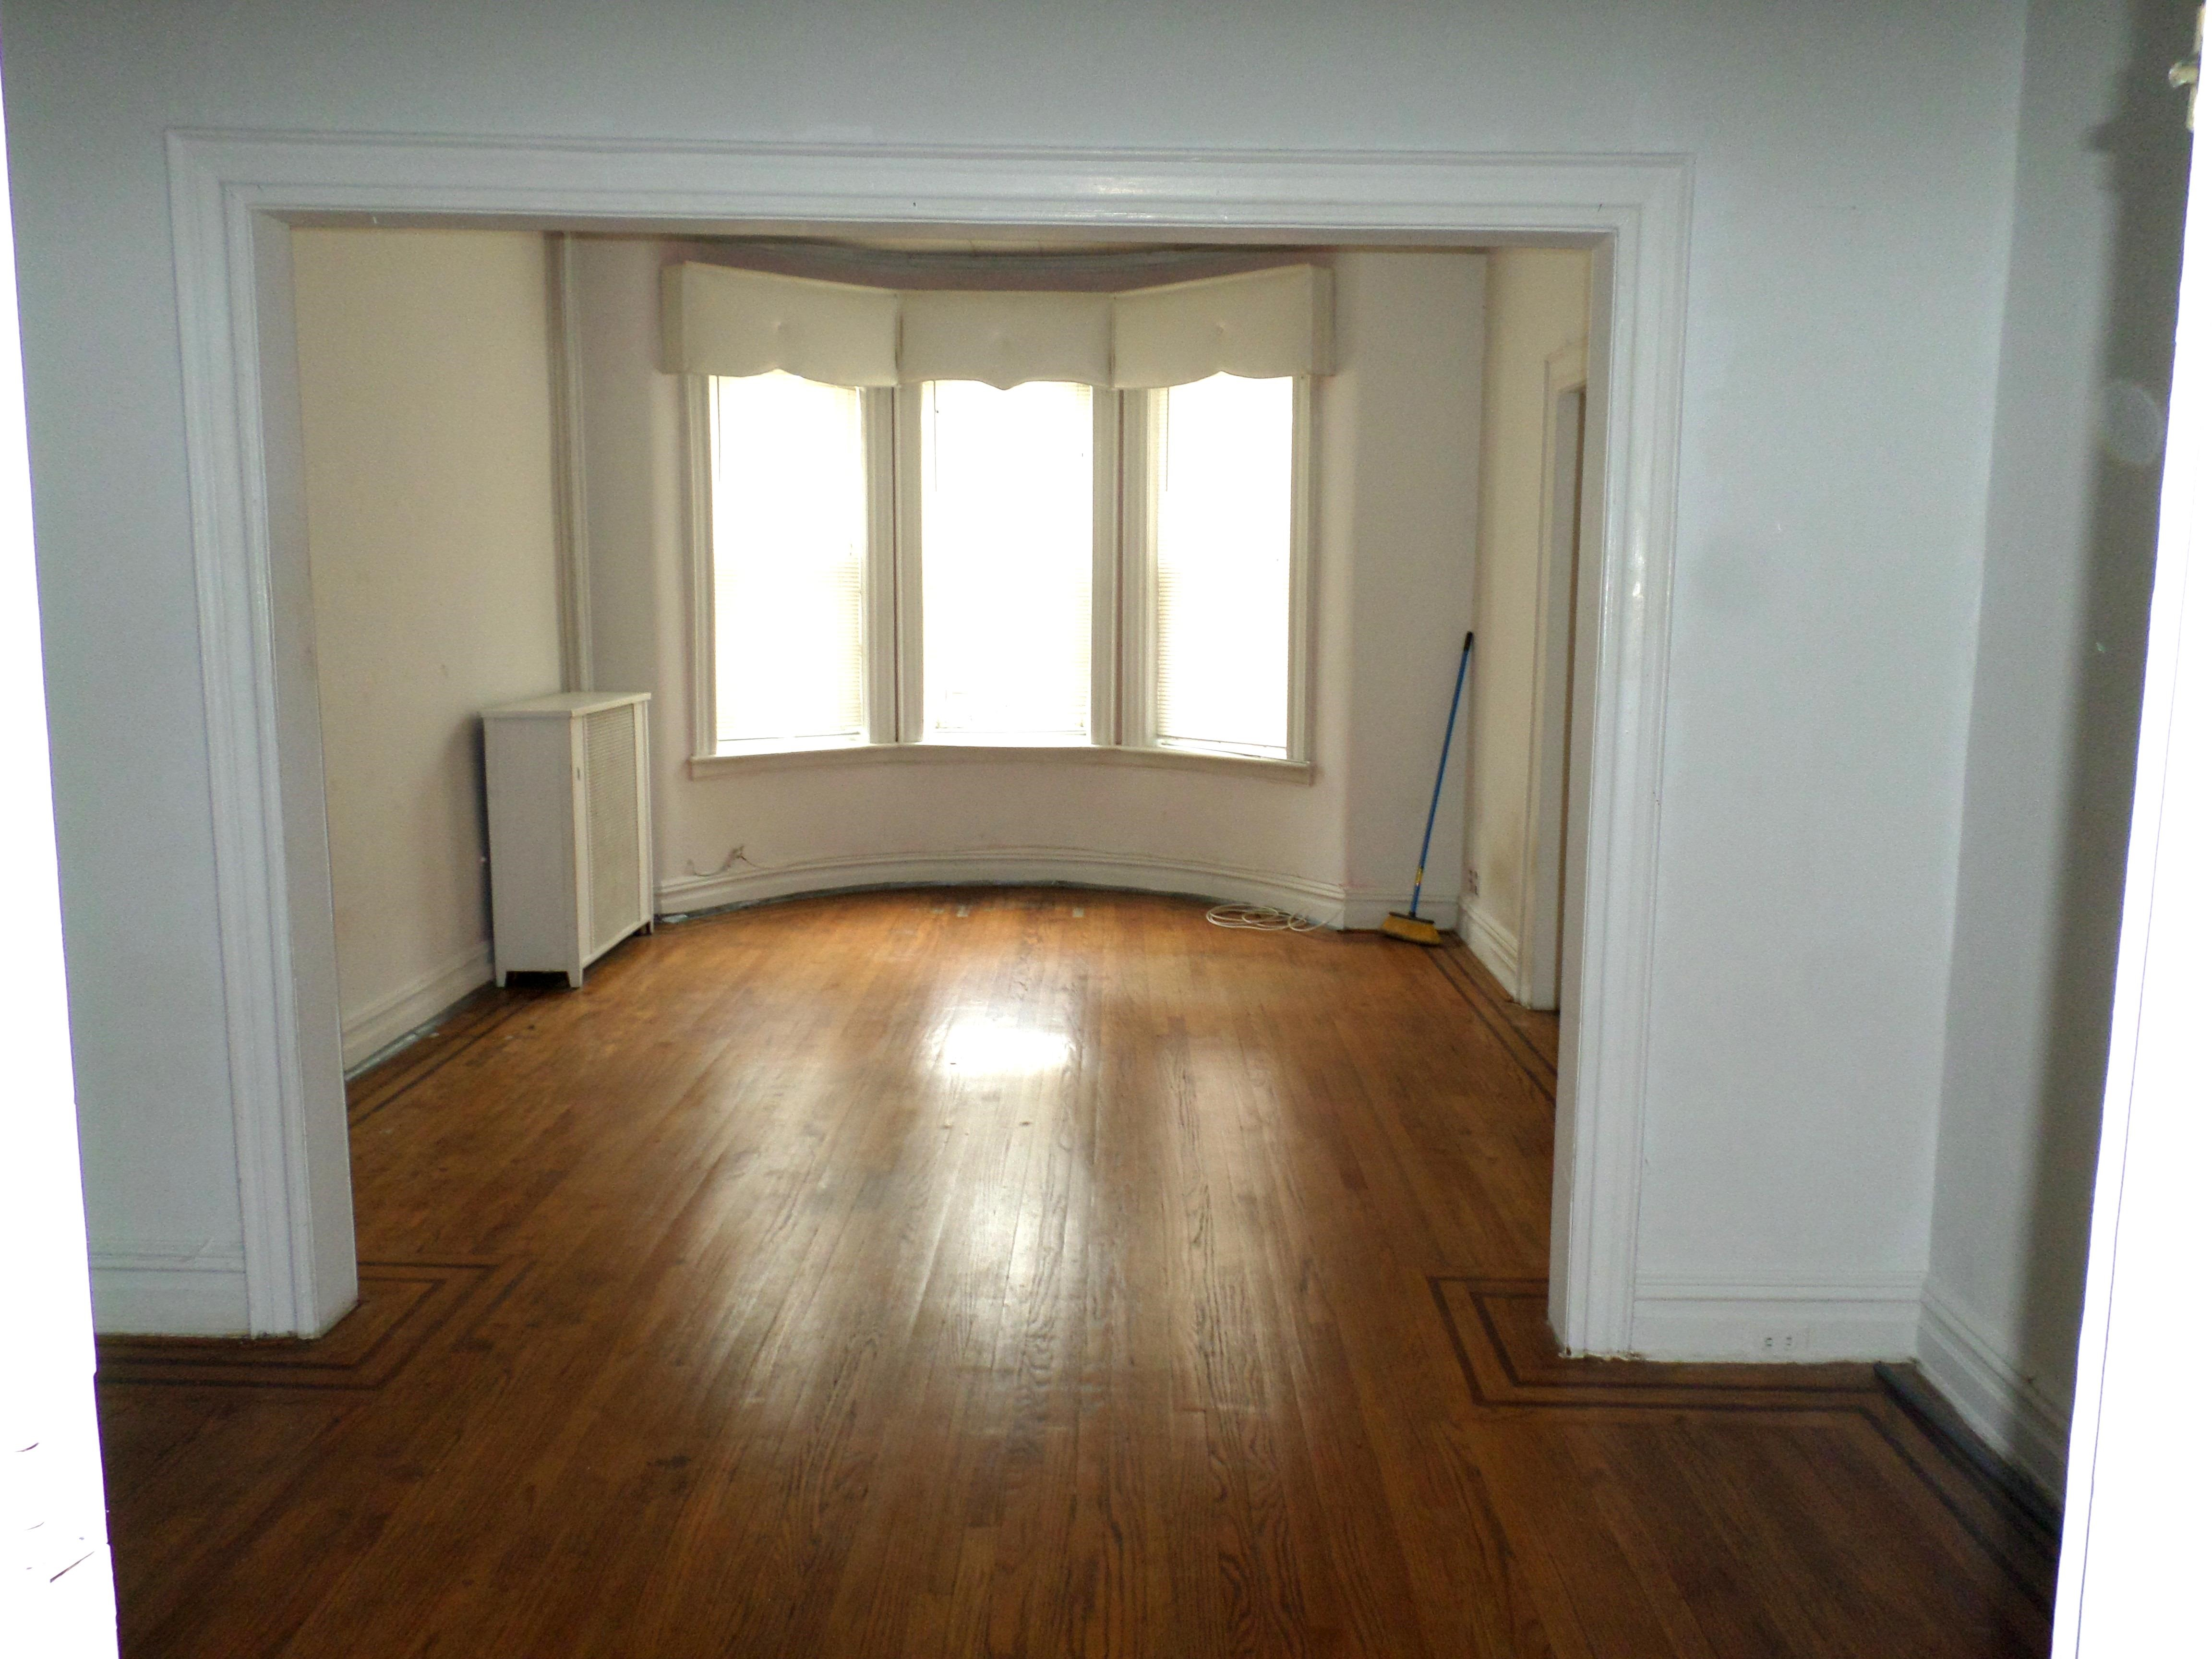 Railroad Style 2 Bedroom Apartment On Lovely Tree-Lined Block. Very Spacious Living Room , Eat In  Kitchen & 1 Full  Bathroom. Heat And Hot Water Included. Beautiful Huge Windows & Closet Space. Close To All Shops & Transportation. Won't  Last!!!